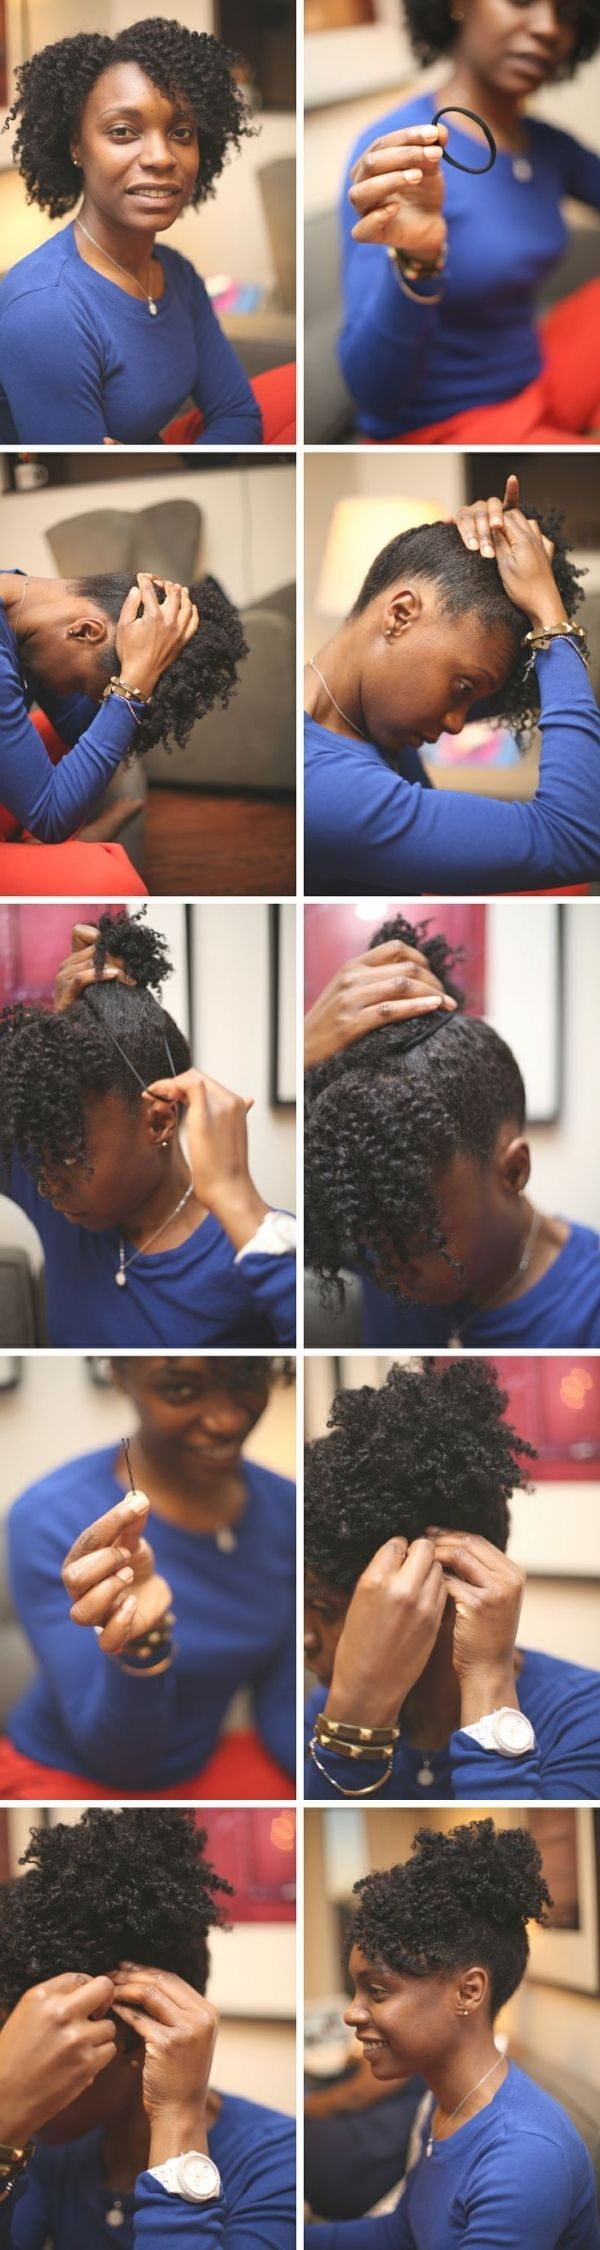 Httpshorthaircutsforblackwomendafni brush that learn to care for elegant natural hair highlights for your coils and color do it yourself diy on long or short twa styles 4c 4b 4a medium solutioingenieria Image collections